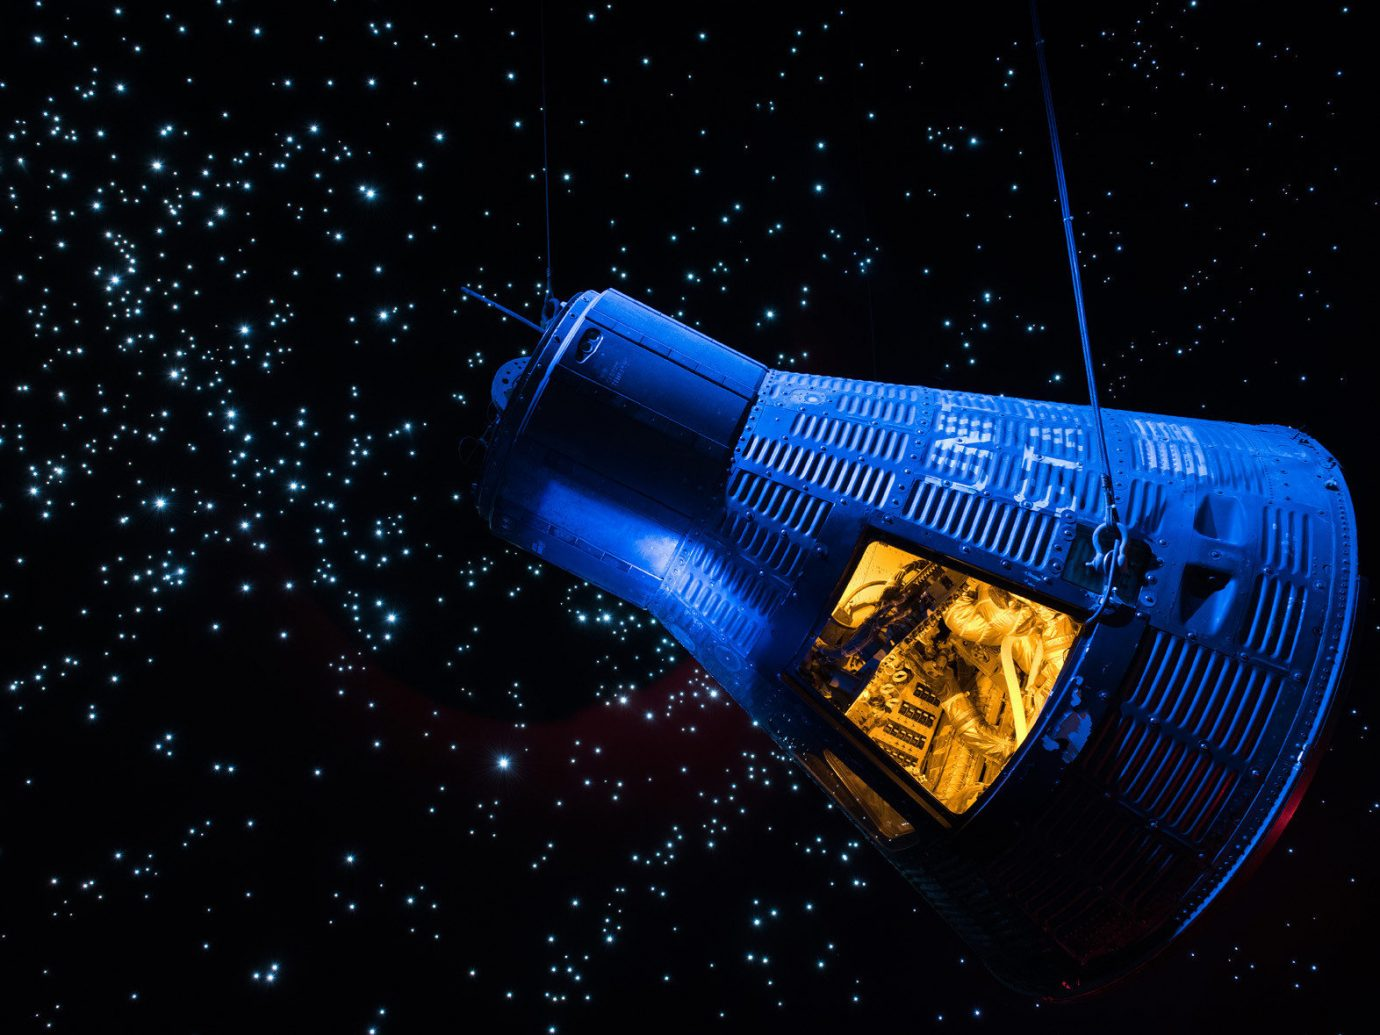 Trip Ideas vehicle night astronomical object outer space spacecraft font computer wallpaper space screenshot illustration